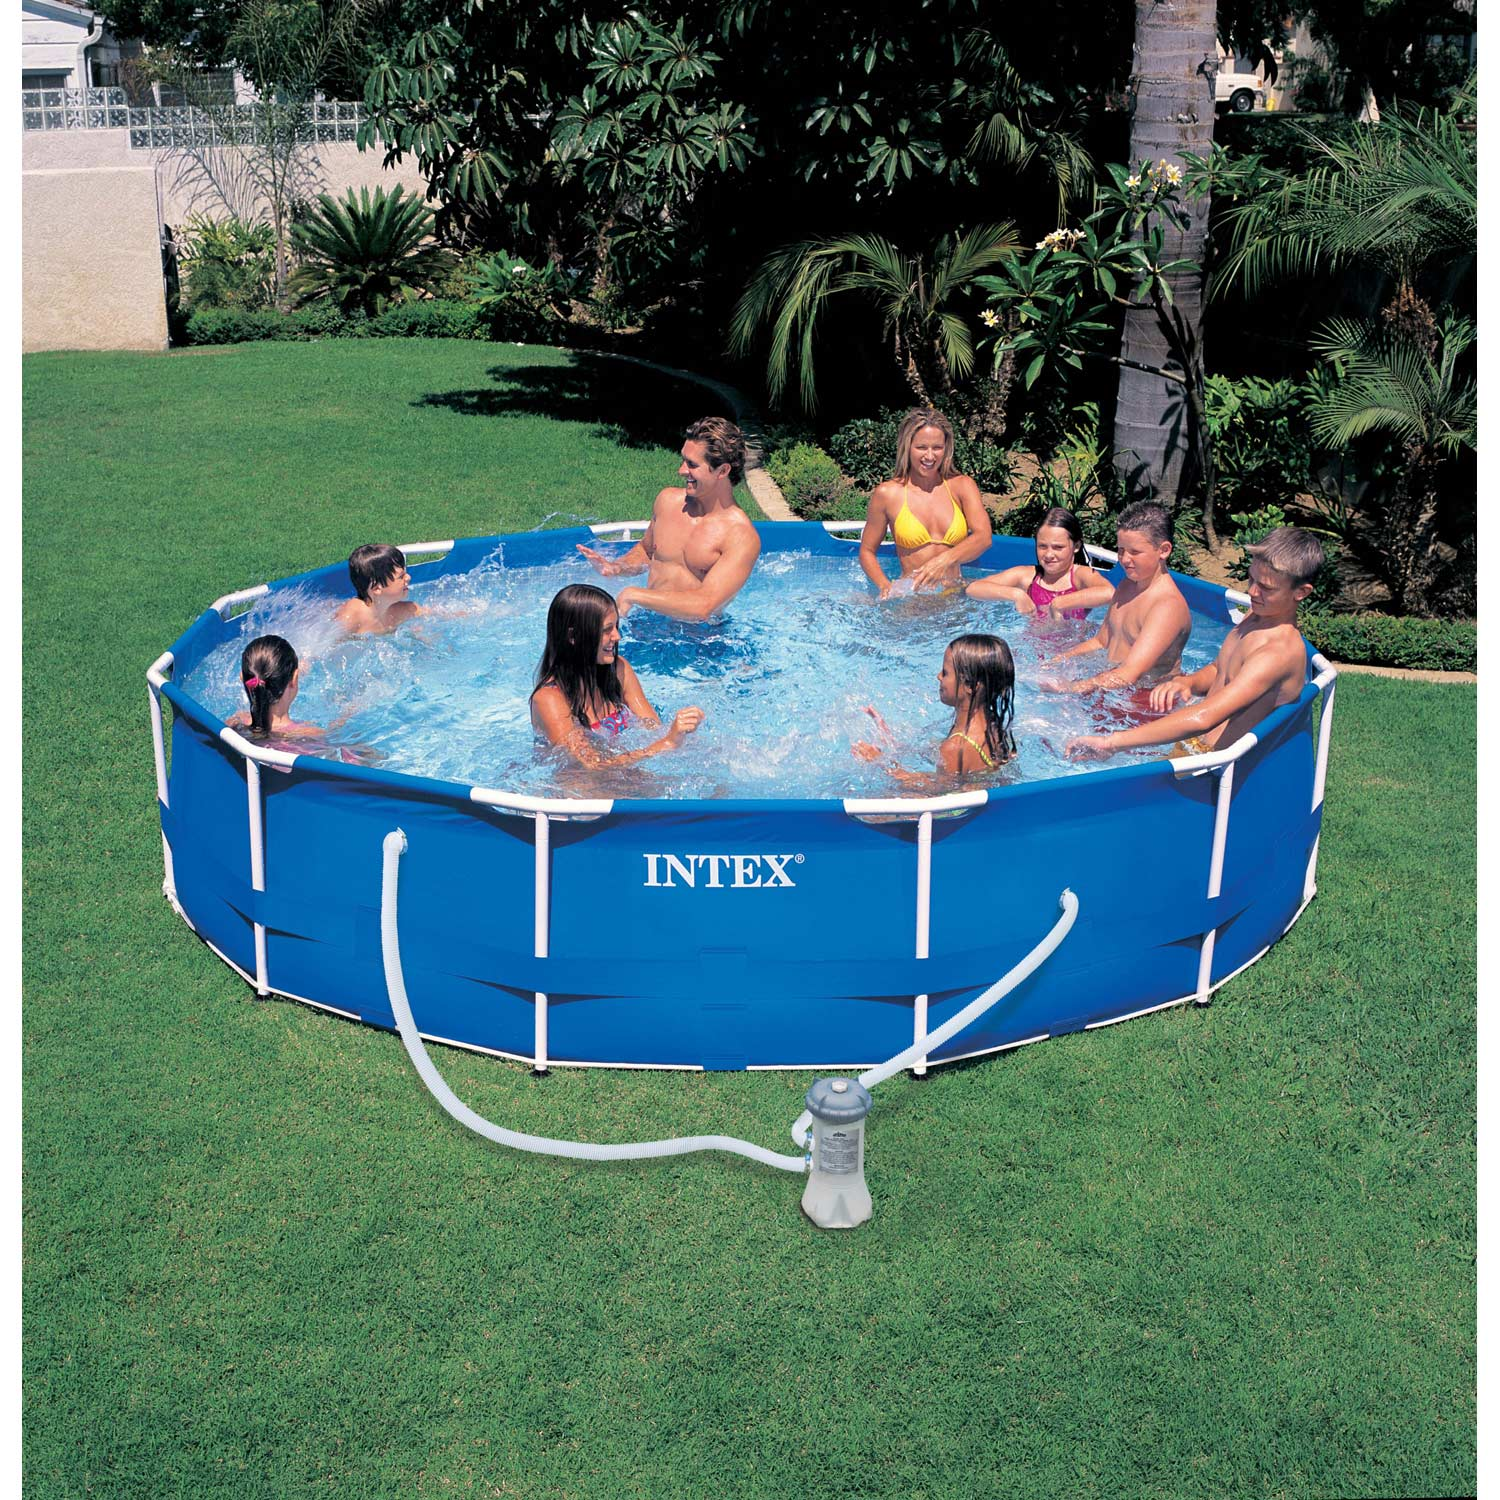 Piscine hors sol autoportante tubulaire m tal frame intex for Piscine dans le sol